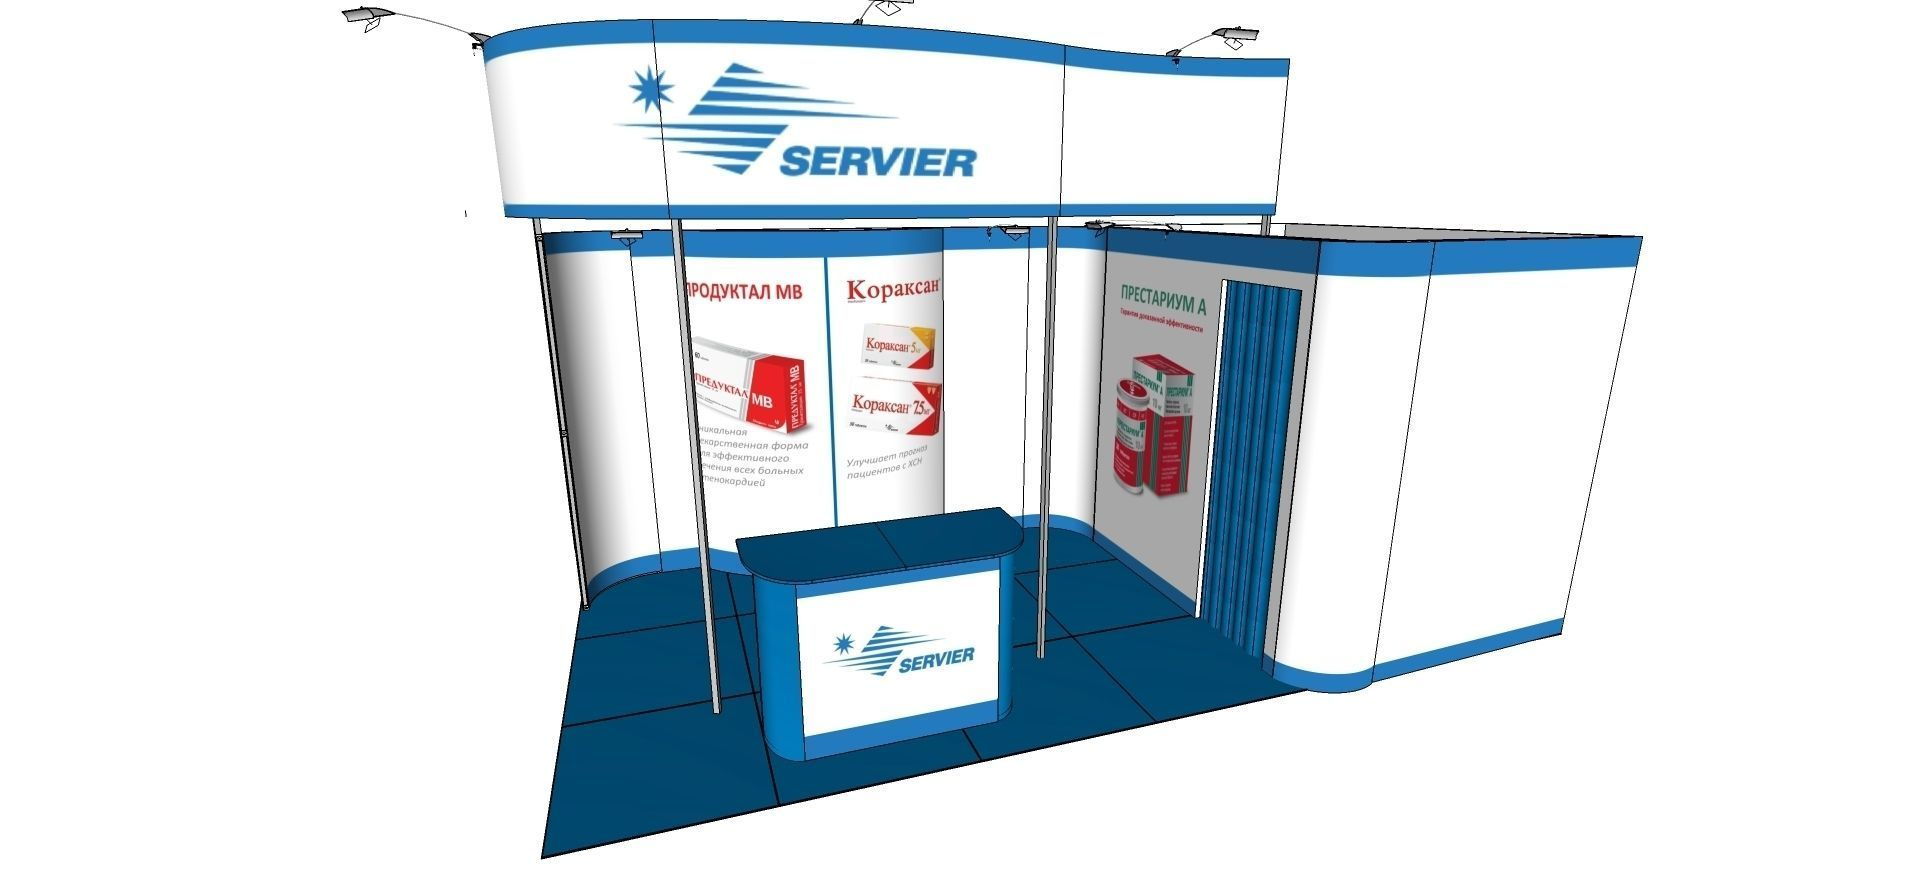 Exhibition Stand 3d Model Sketchup : The exhibition portable t airframe big st d model skp